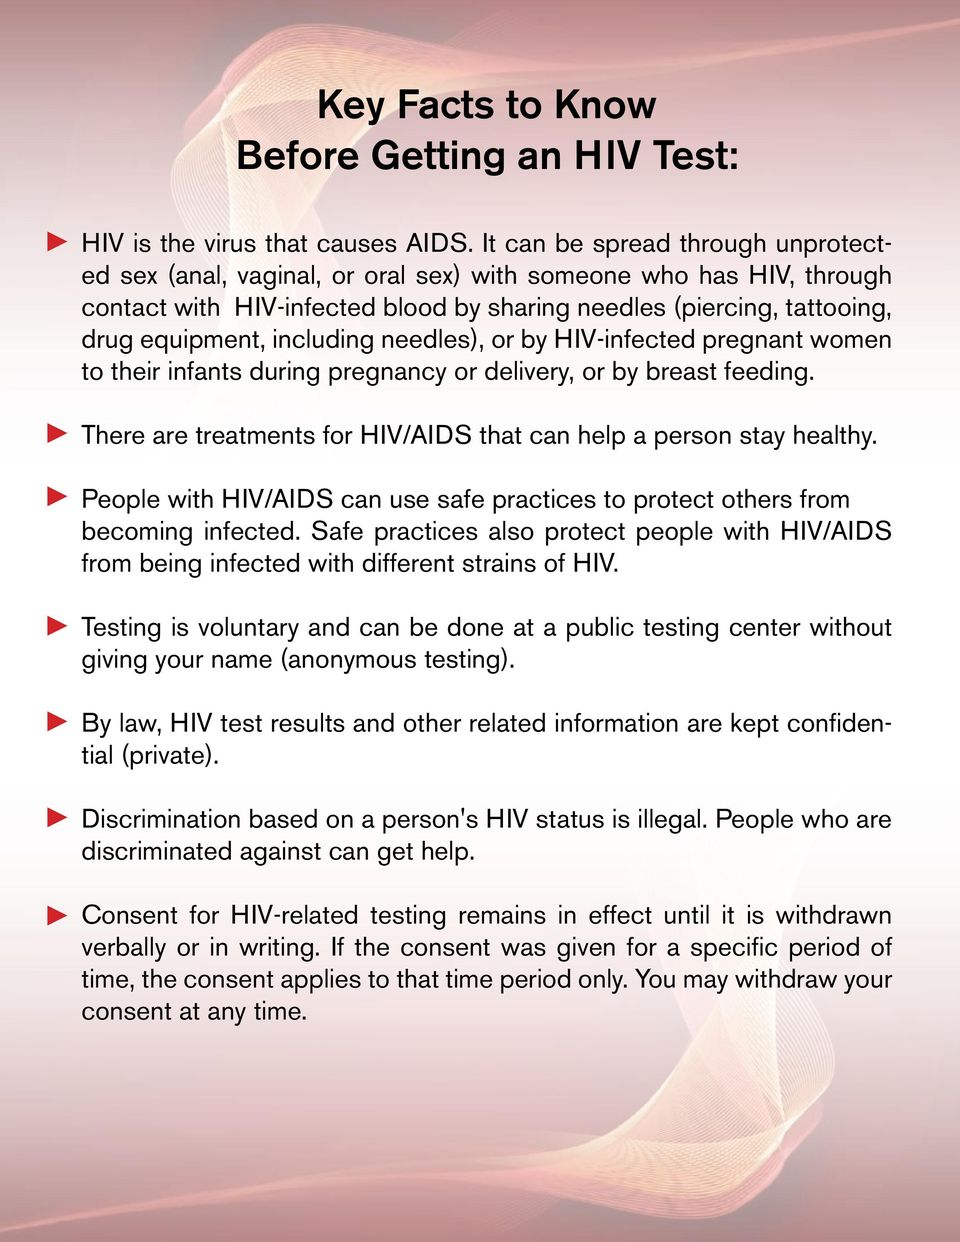 including needles), or by HIV-infected pregnant women to their infants during pregnancy or delivery, or by breast feeding. There are treatments for HIV/AIDS that can help a person stay healthy.